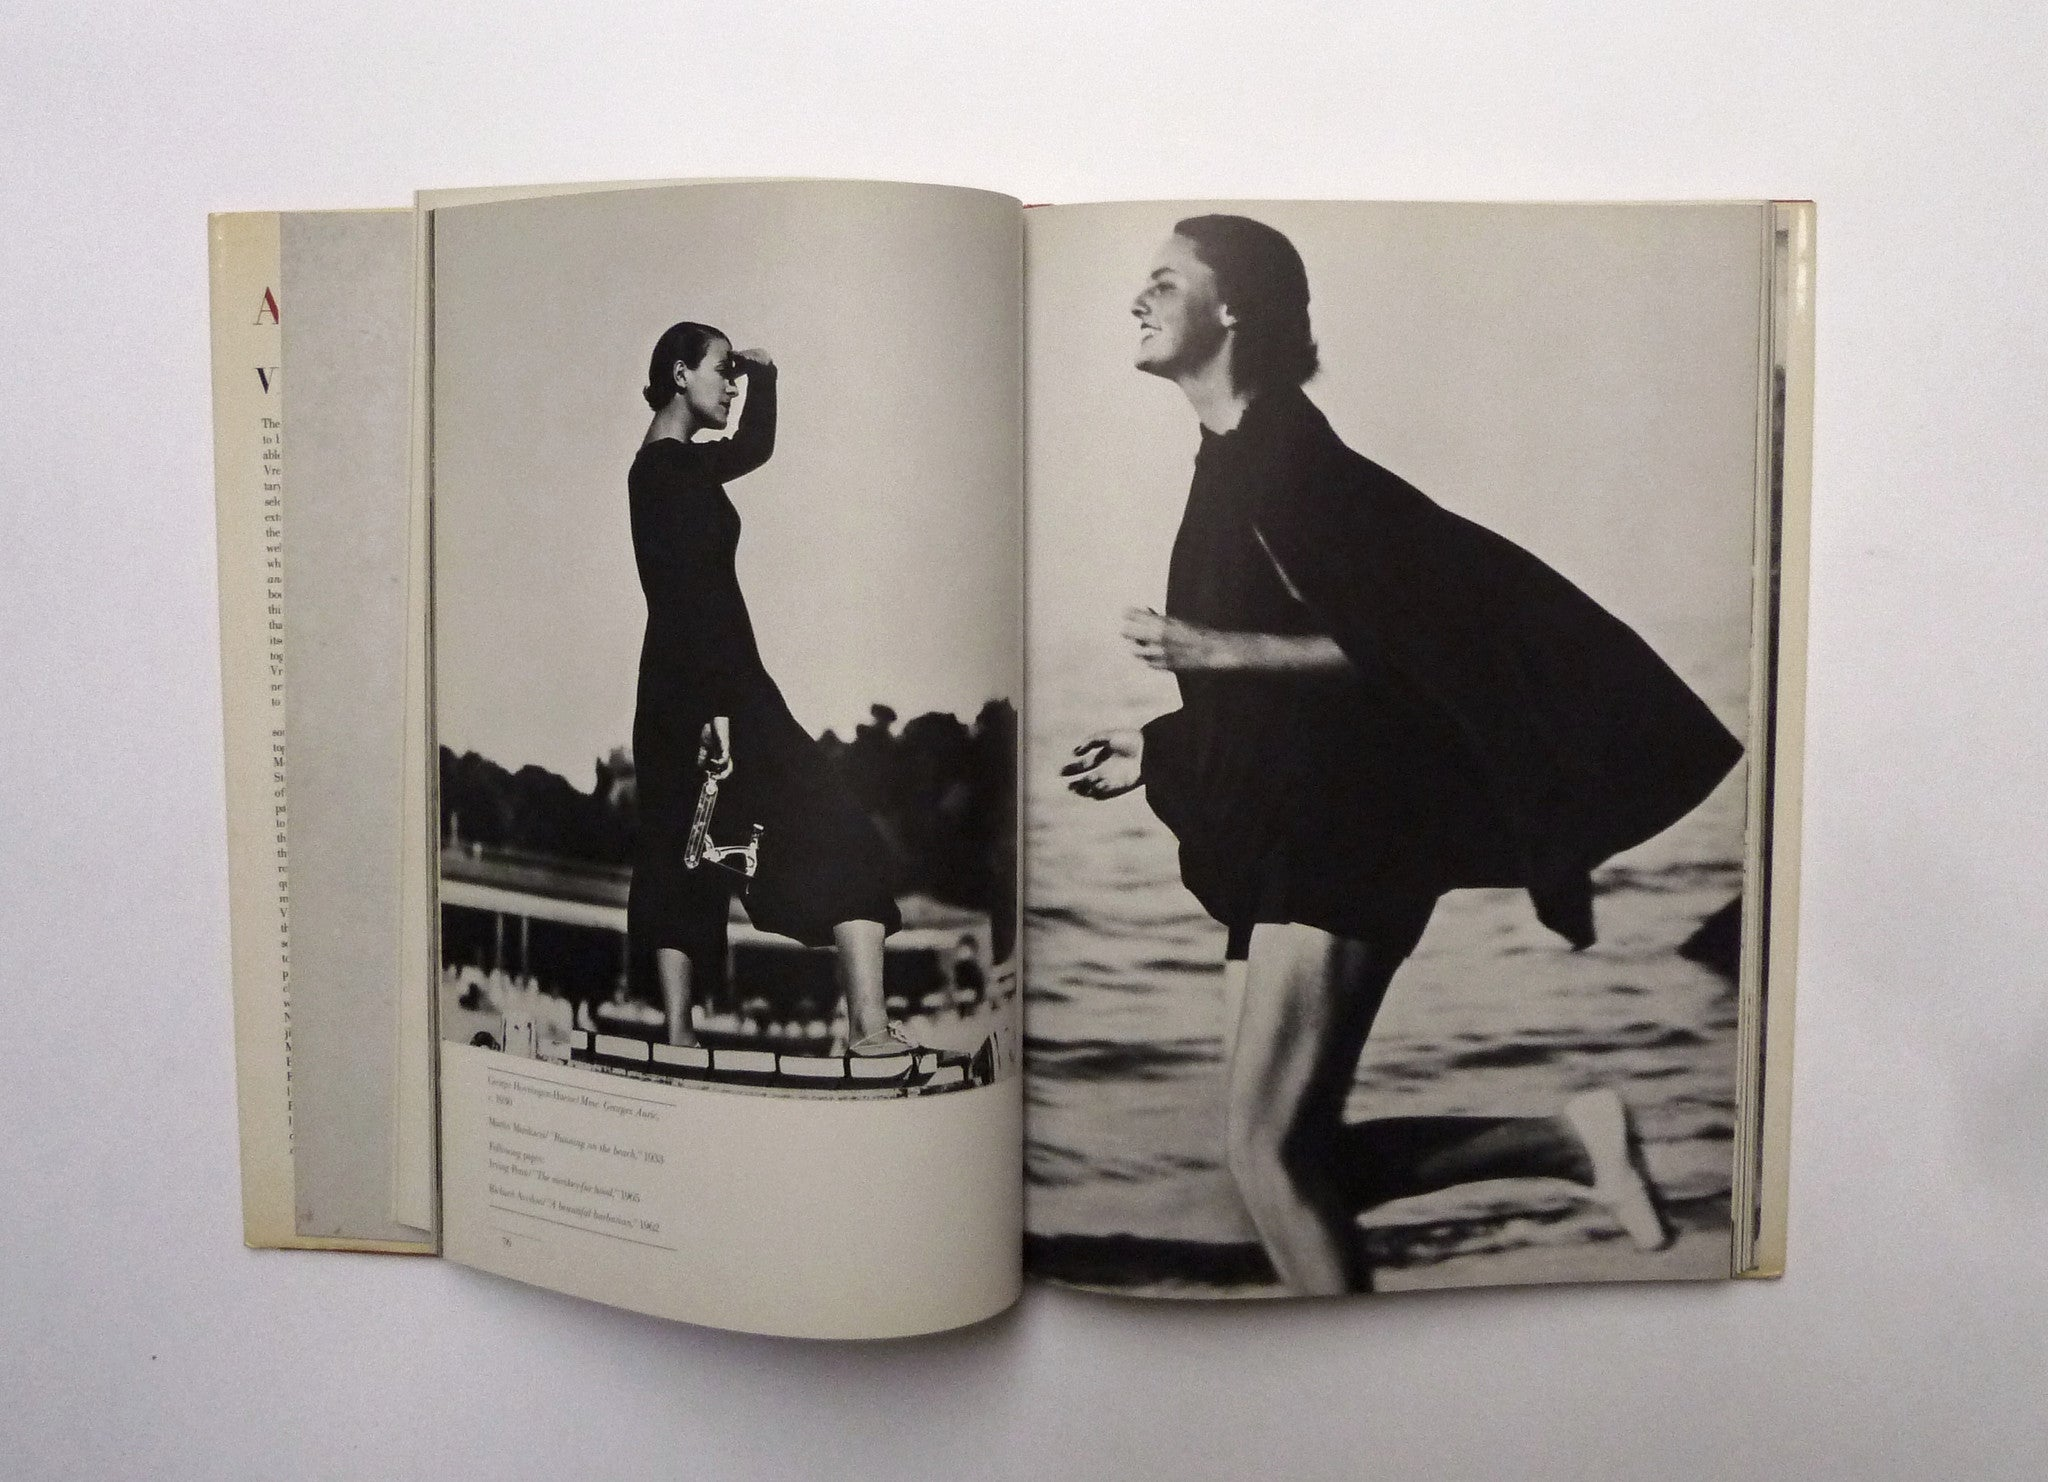 DIANA VREELAND / Allure - tailor books